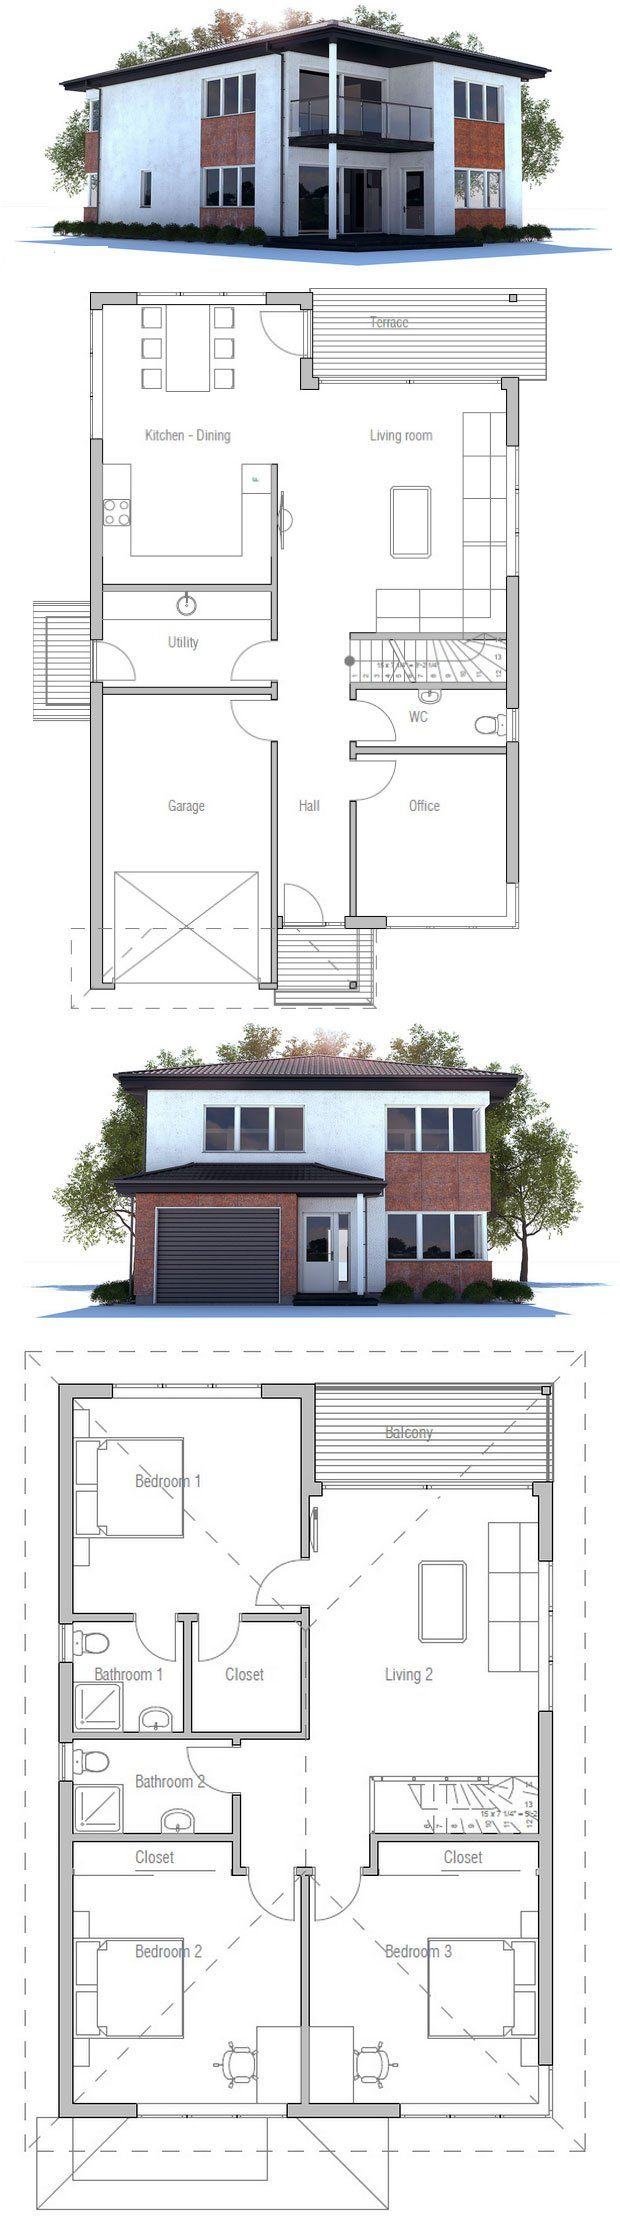 Narrow lot modern house plan floor plan from concepthome for Modern house plans for narrow lots